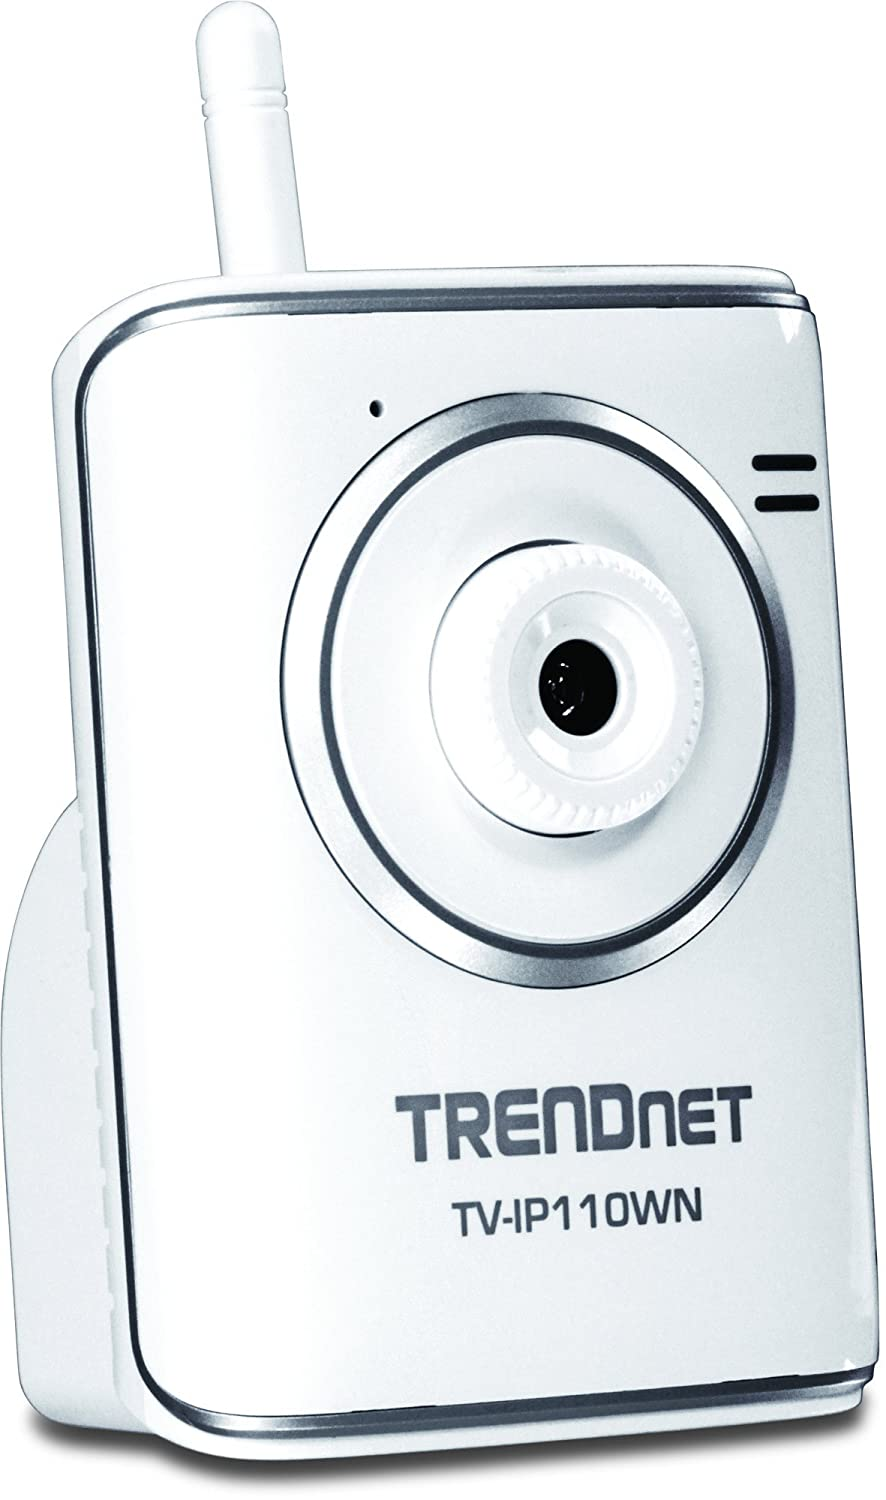 TRENDnet Wireless Internet Surveillance Camera, TV-IP110WN [並行輸入品] B01KBRB6X6